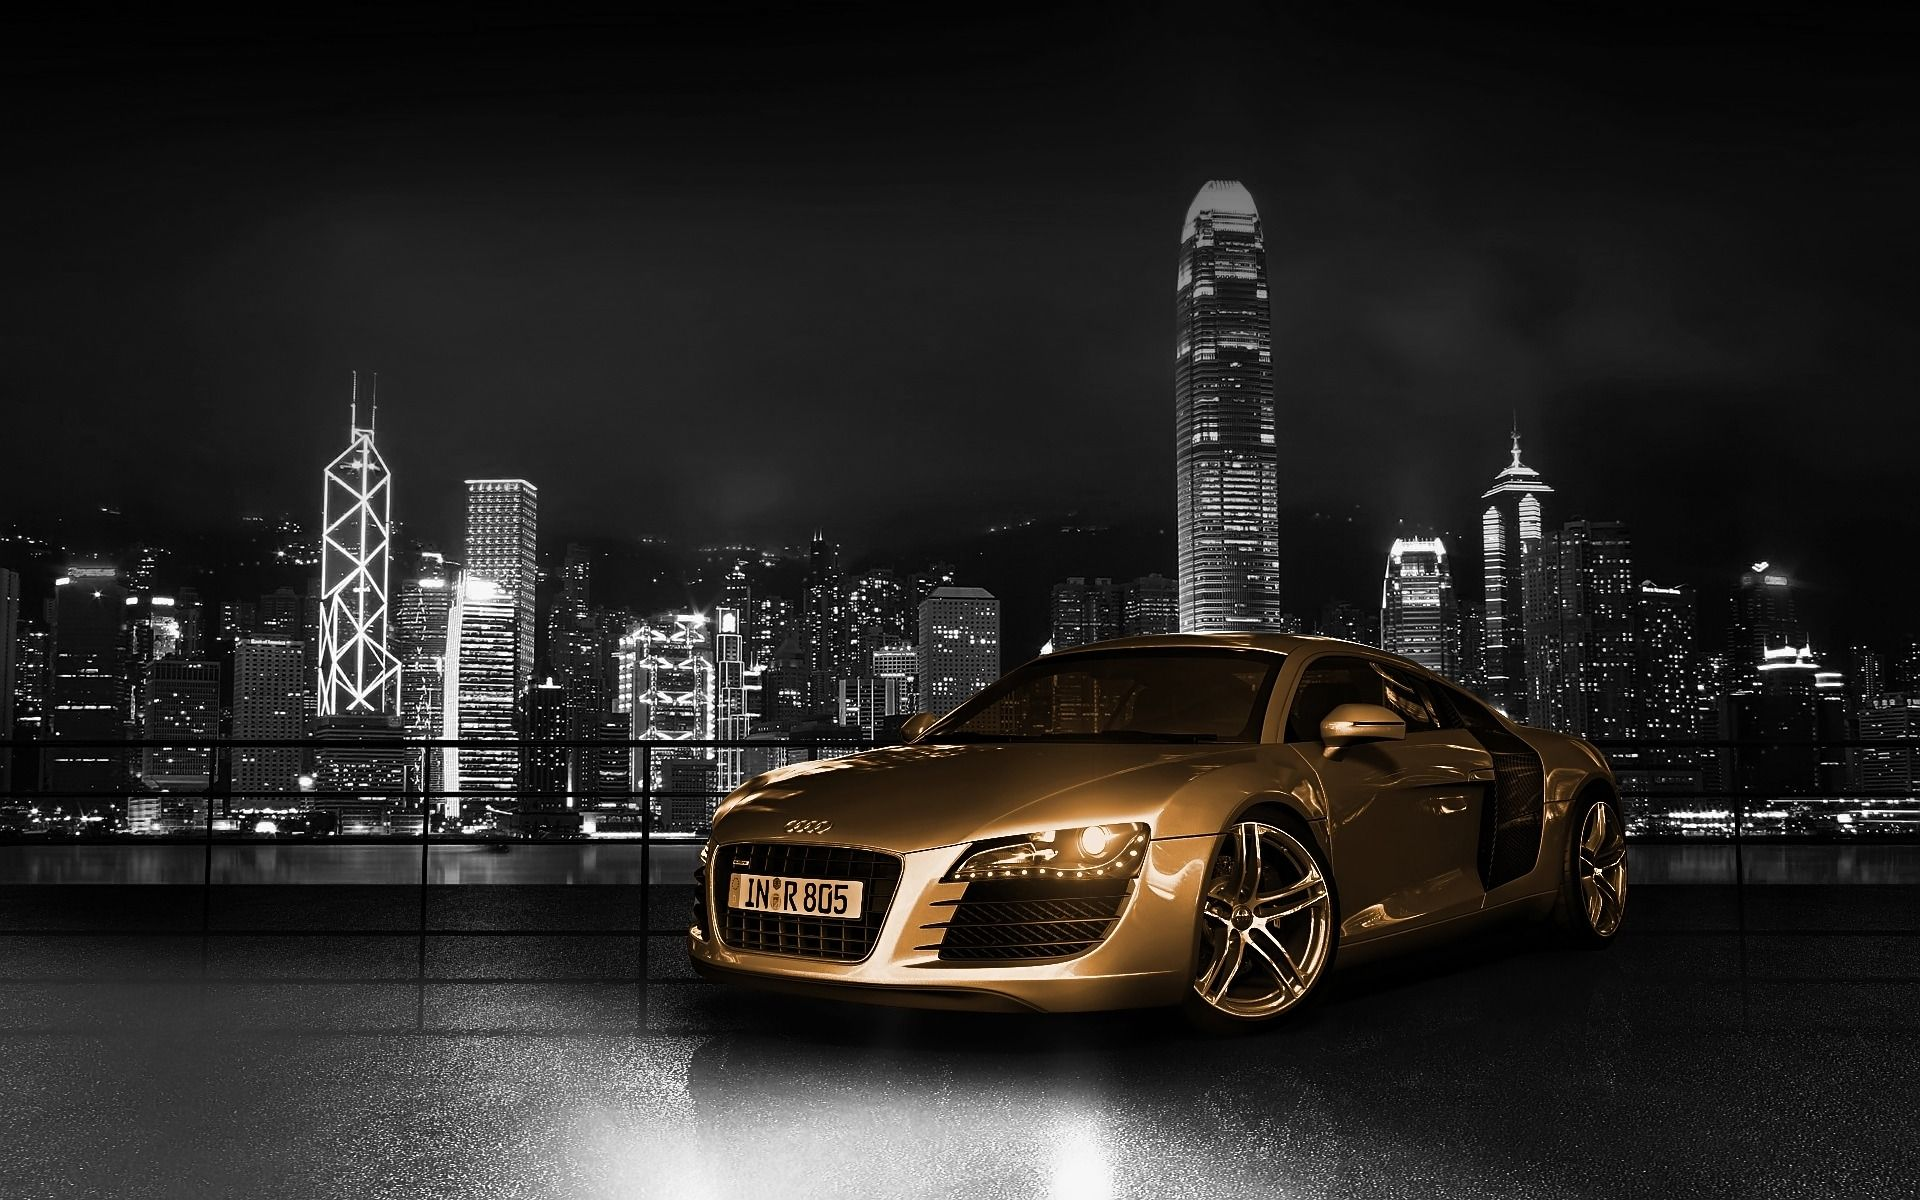 Audi R8 Desktop Wallpaper 04 - [1920x1200] Cool Audi R Wallpapers on ford gt cool wallpapers, audi r8 cool cars, mclaren p1 cool wallpapers, saleen s7 cool wallpapers, ford mustang cool wallpapers,